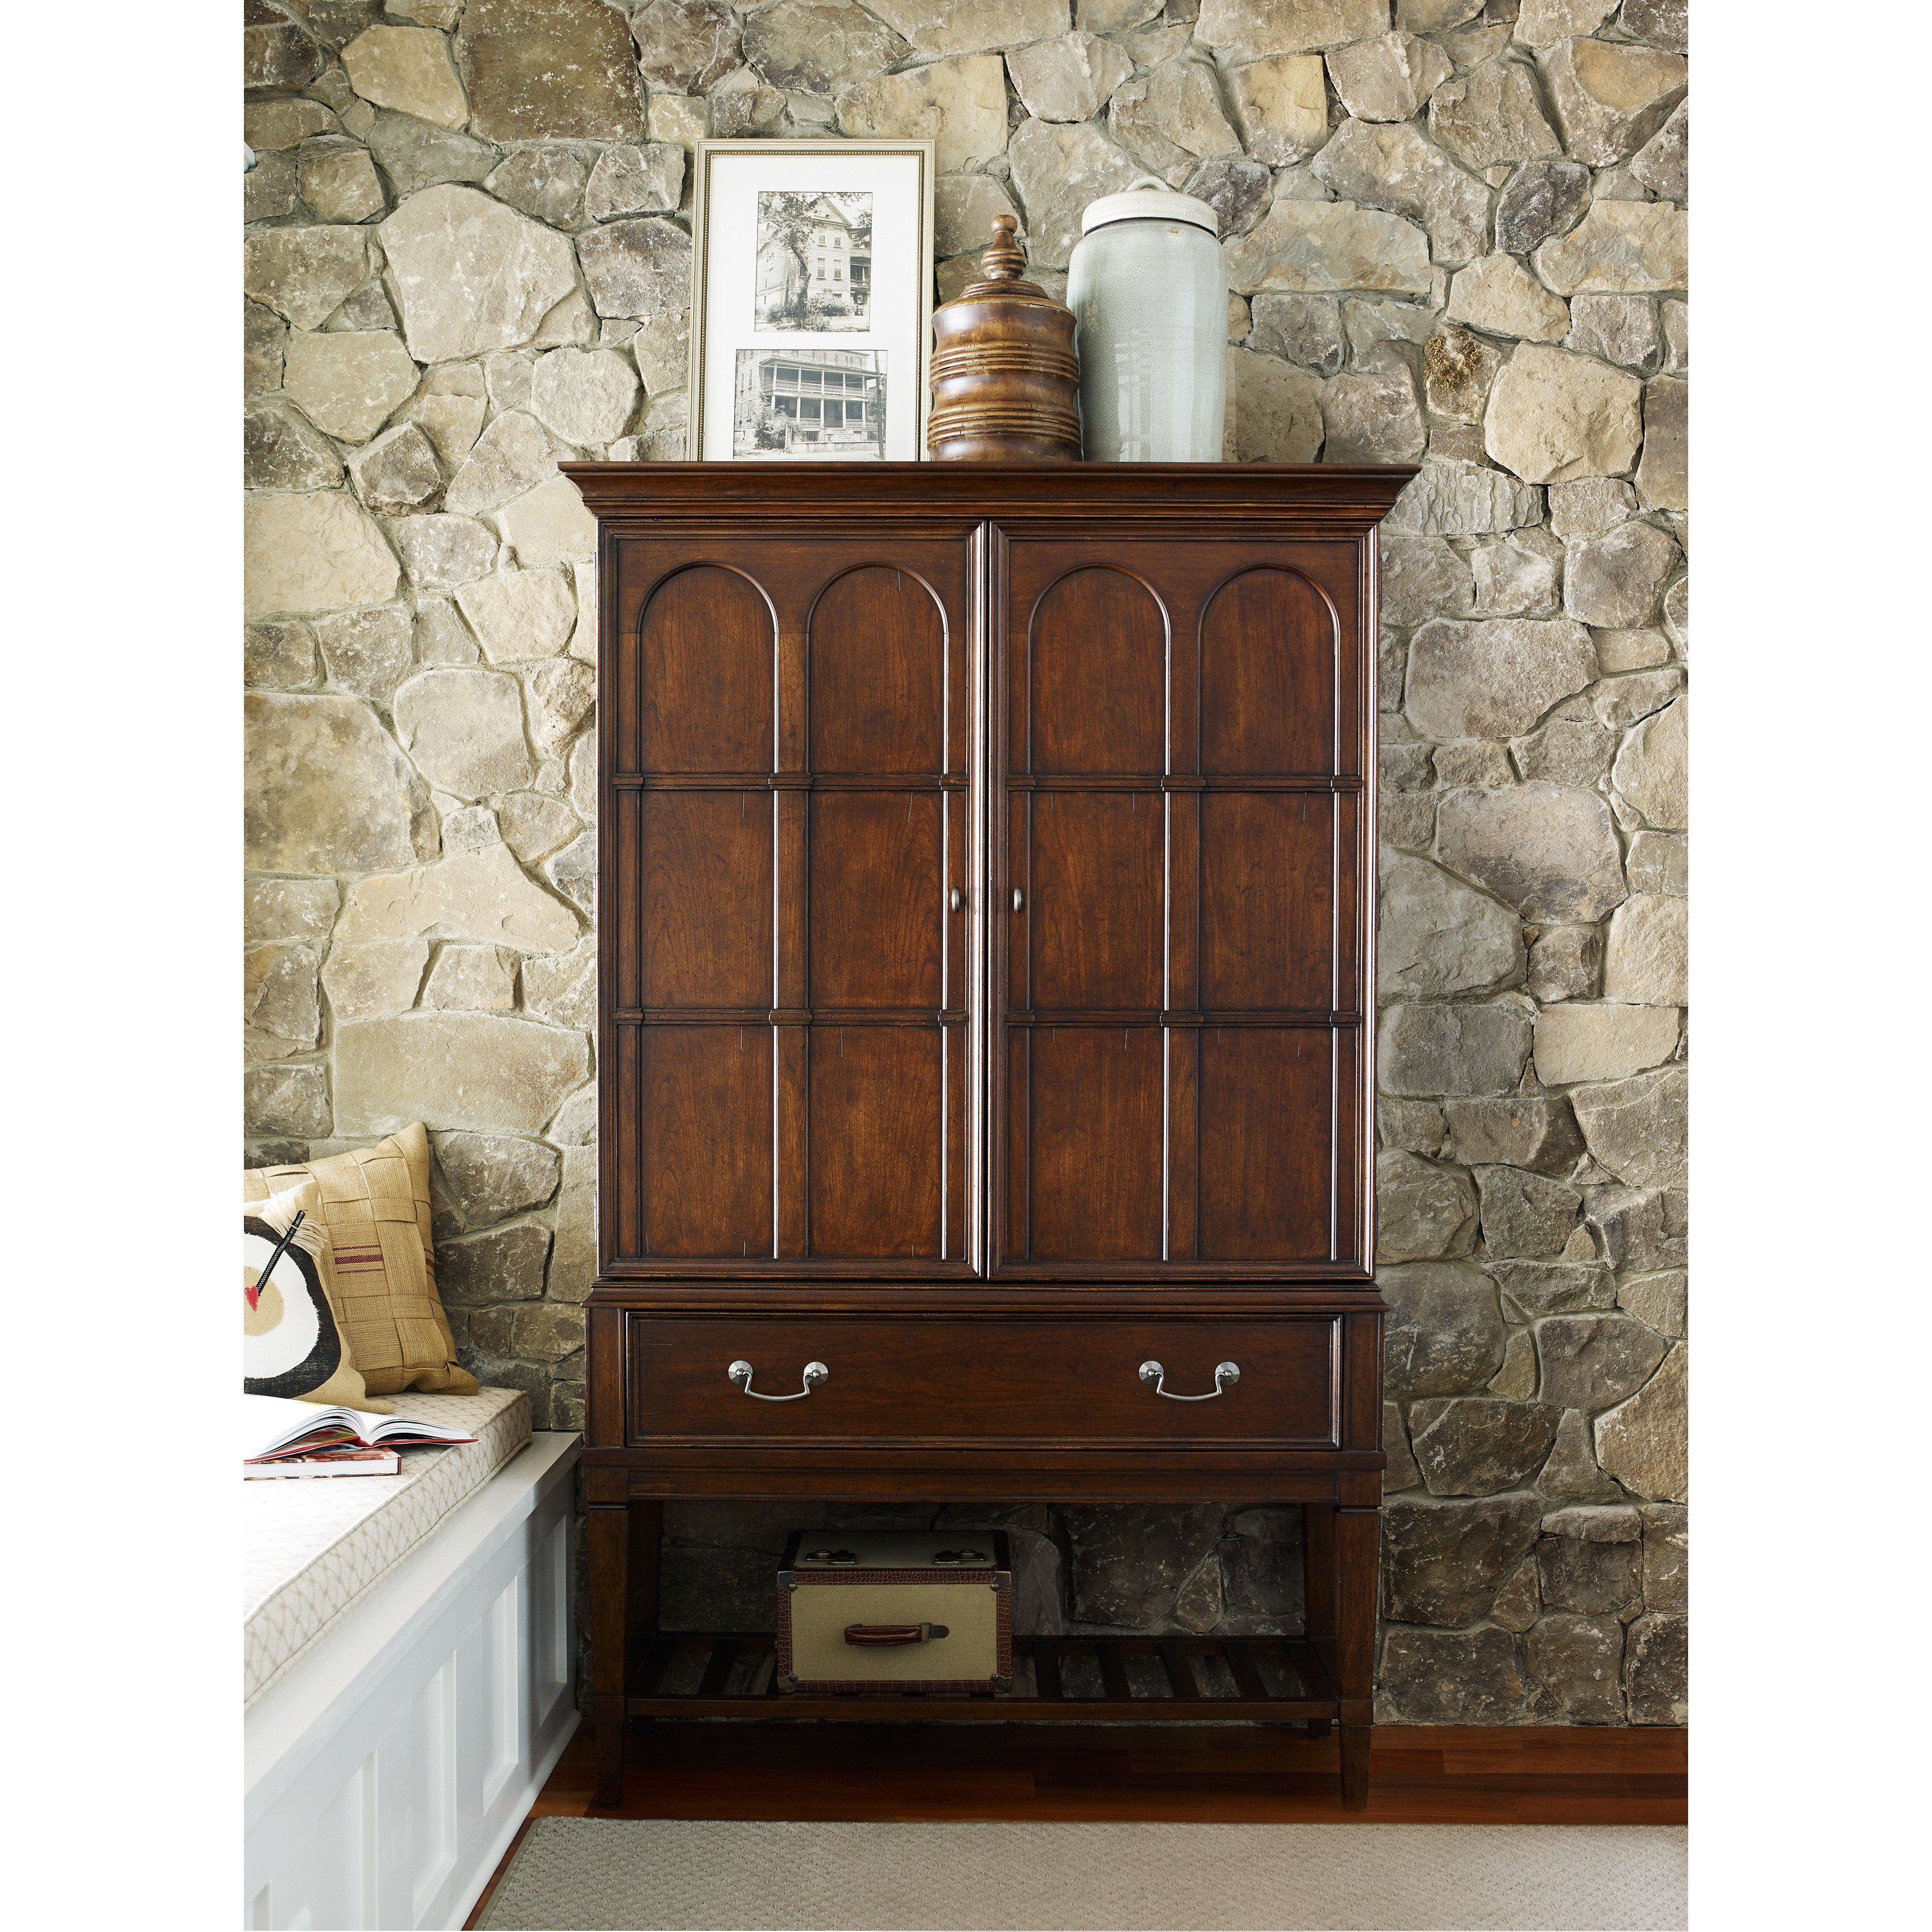 Well Liked Rachael Ray Upstatelegacy Classic Bar Cabinet – 6040 155 Within Arminta Wood Sideboards (View 20 of 20)